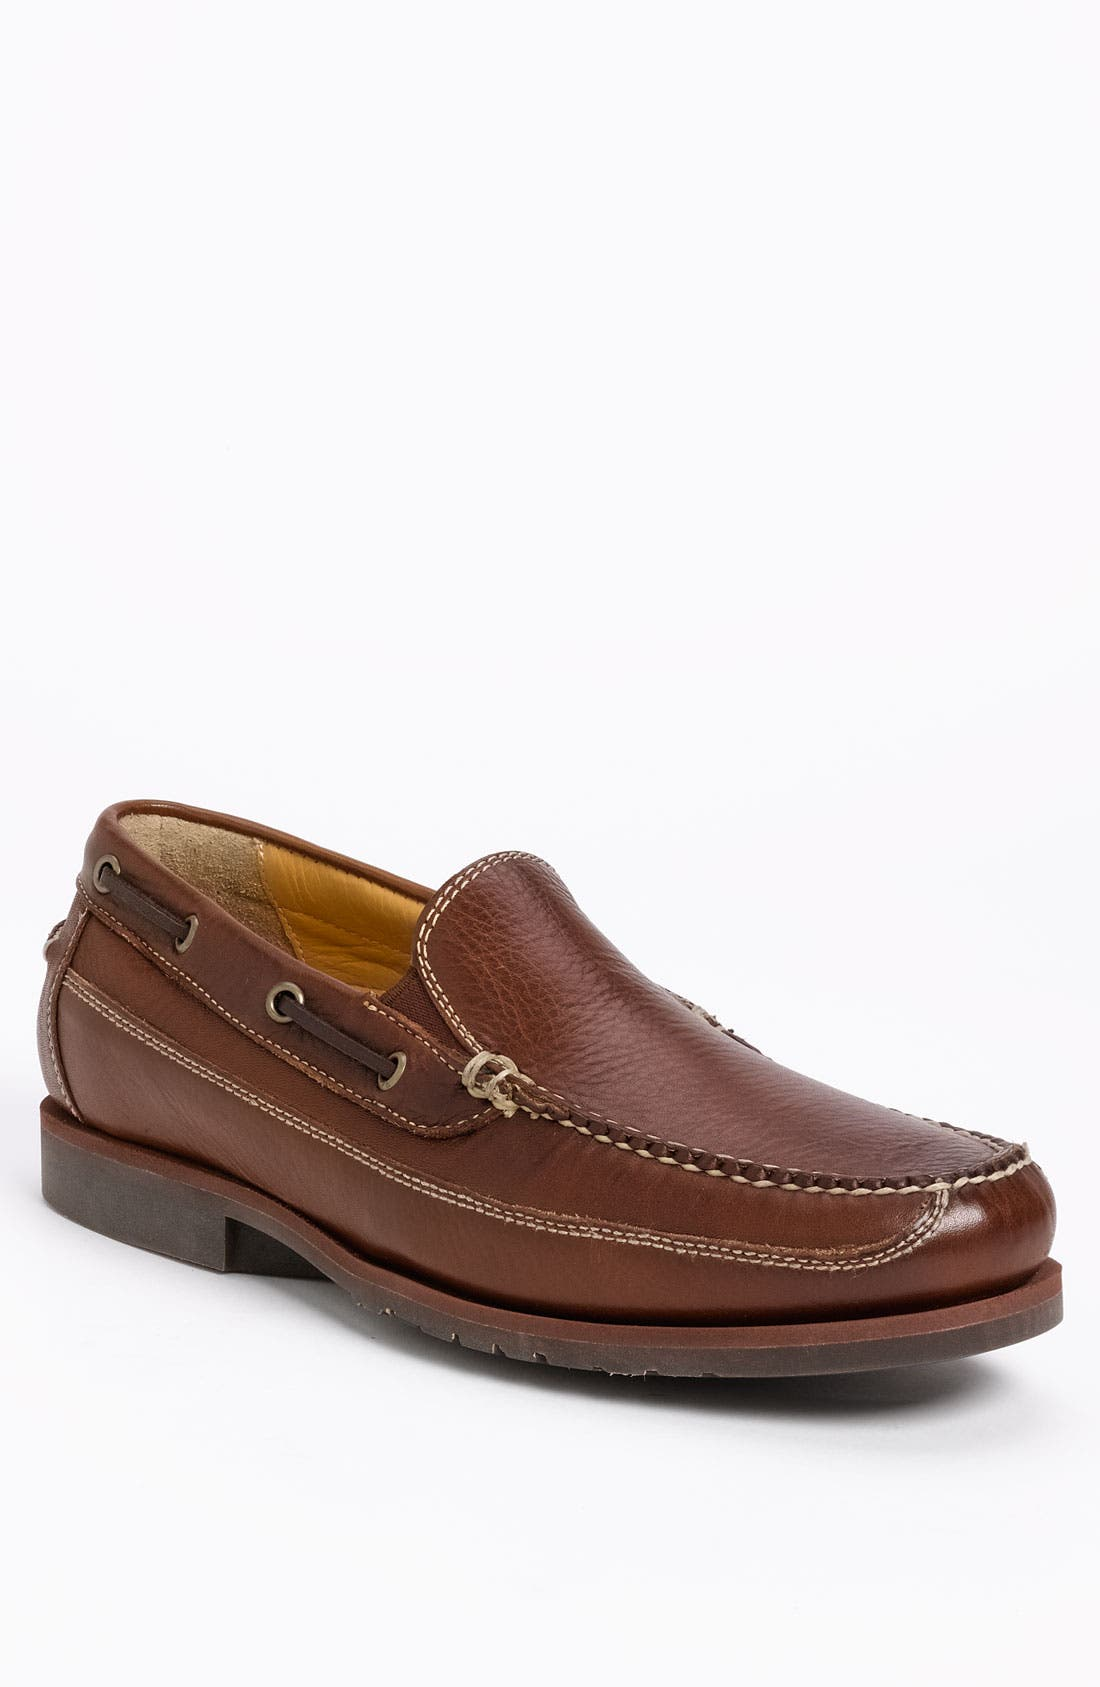 Main Image - Neil M 'Cape' Slip-On